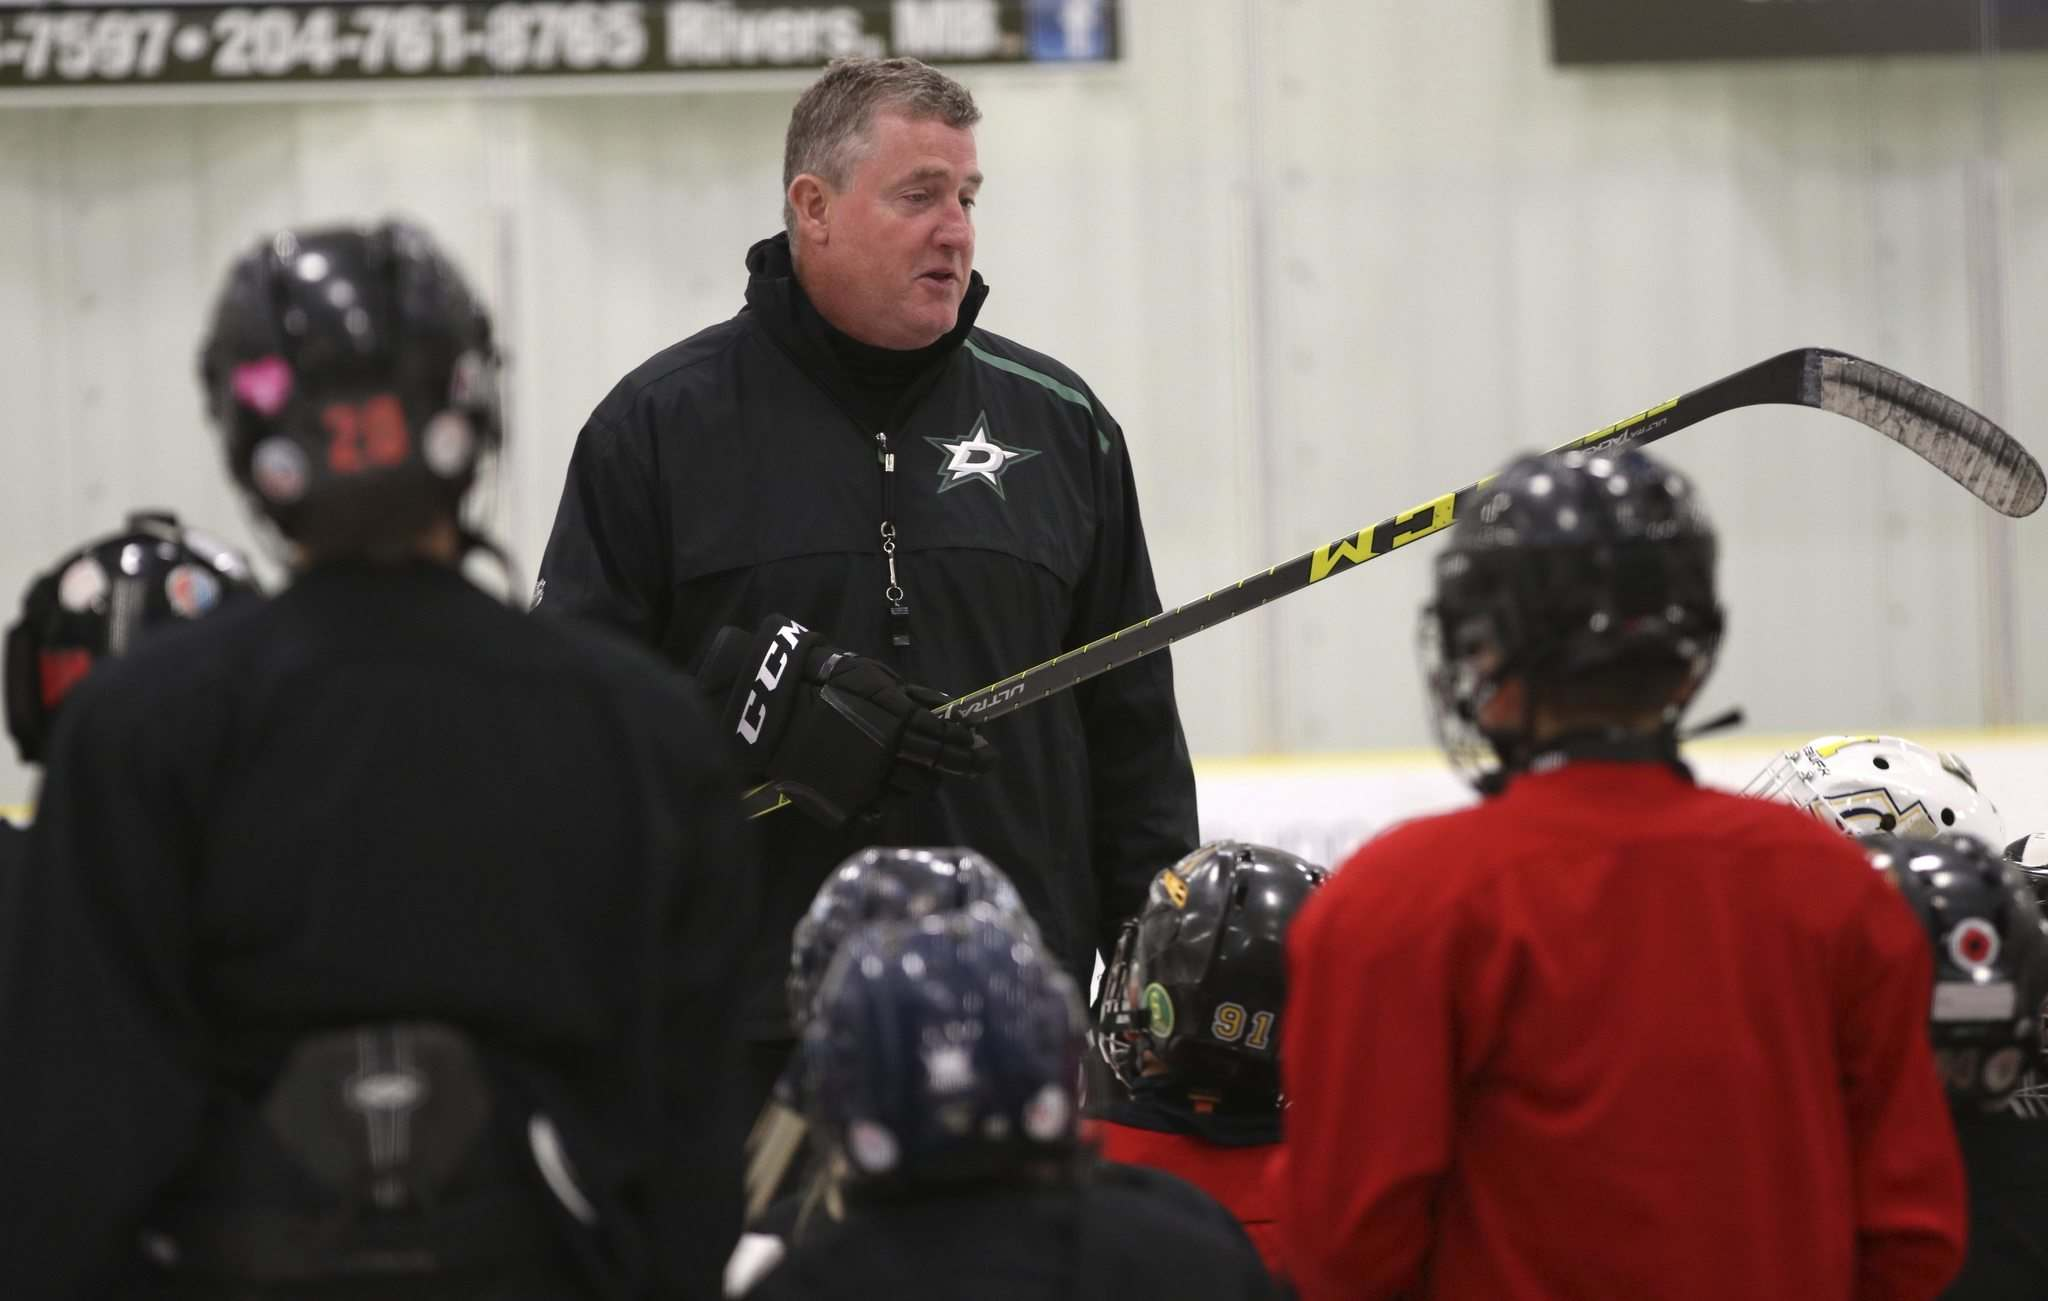 Laxdal runs a hockey school in Rivers every summer, including in 2019.